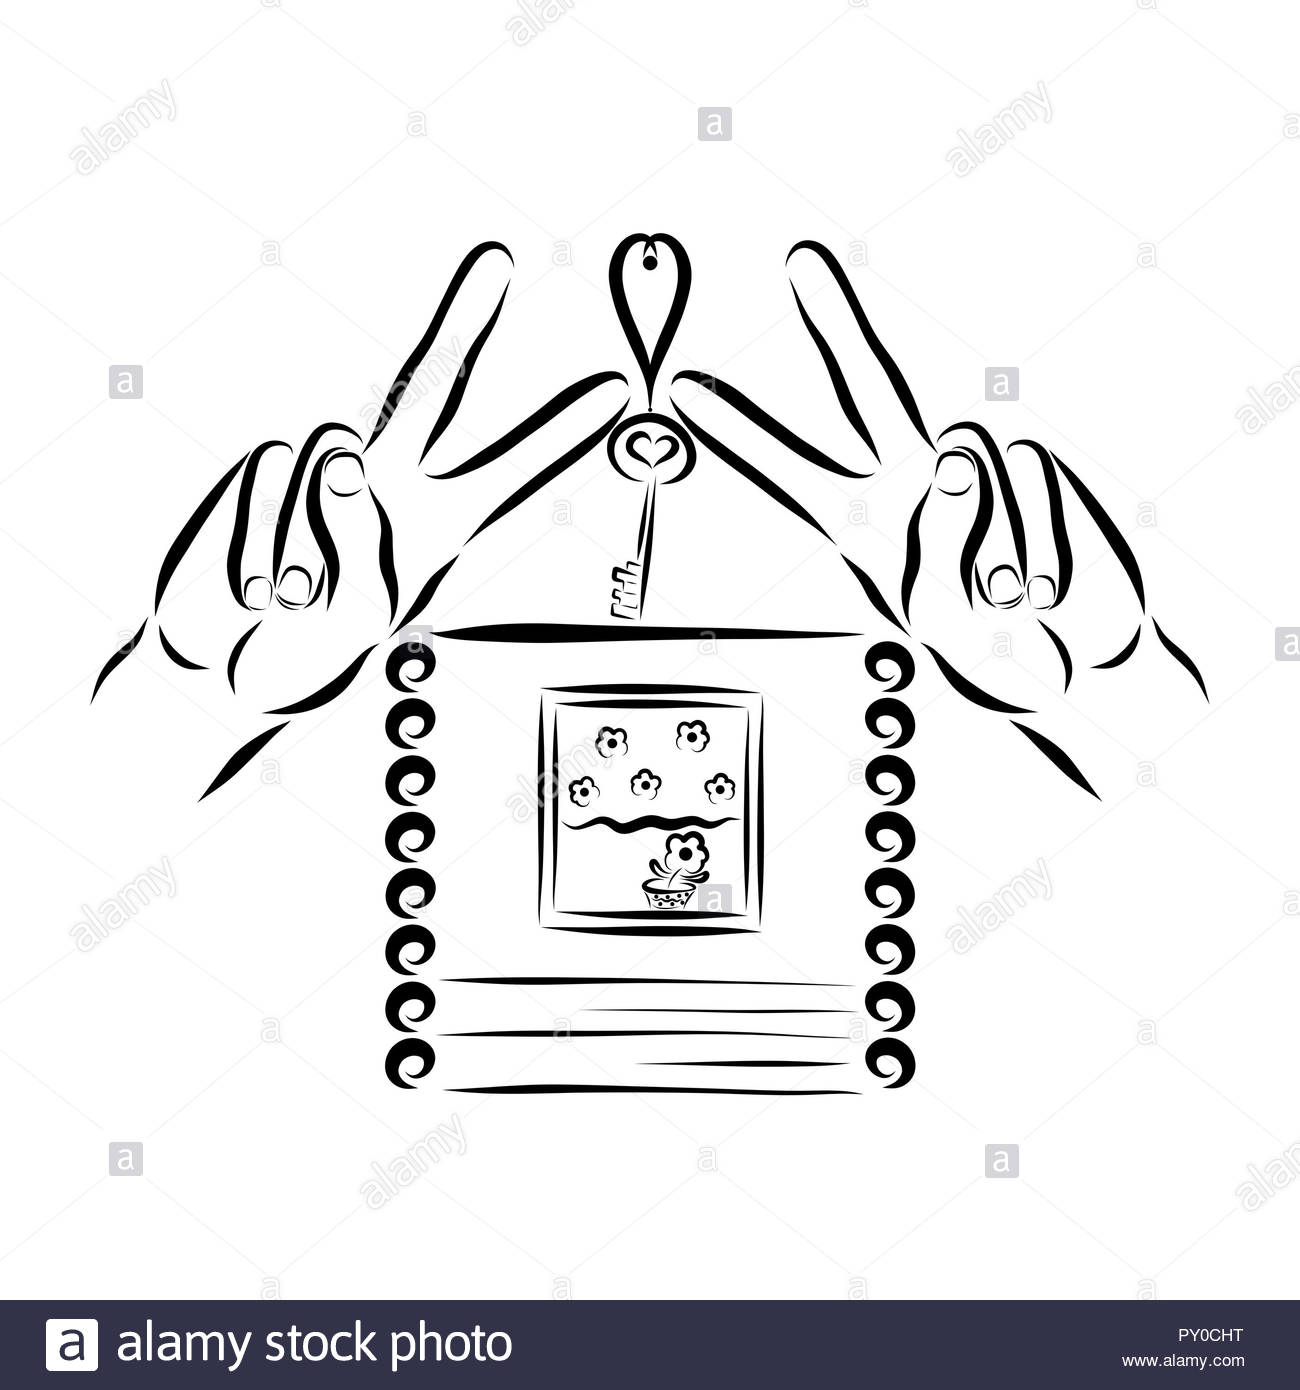 Small cozy house with a flower, hands showing victory sign, and a key with a heart - Stock Image